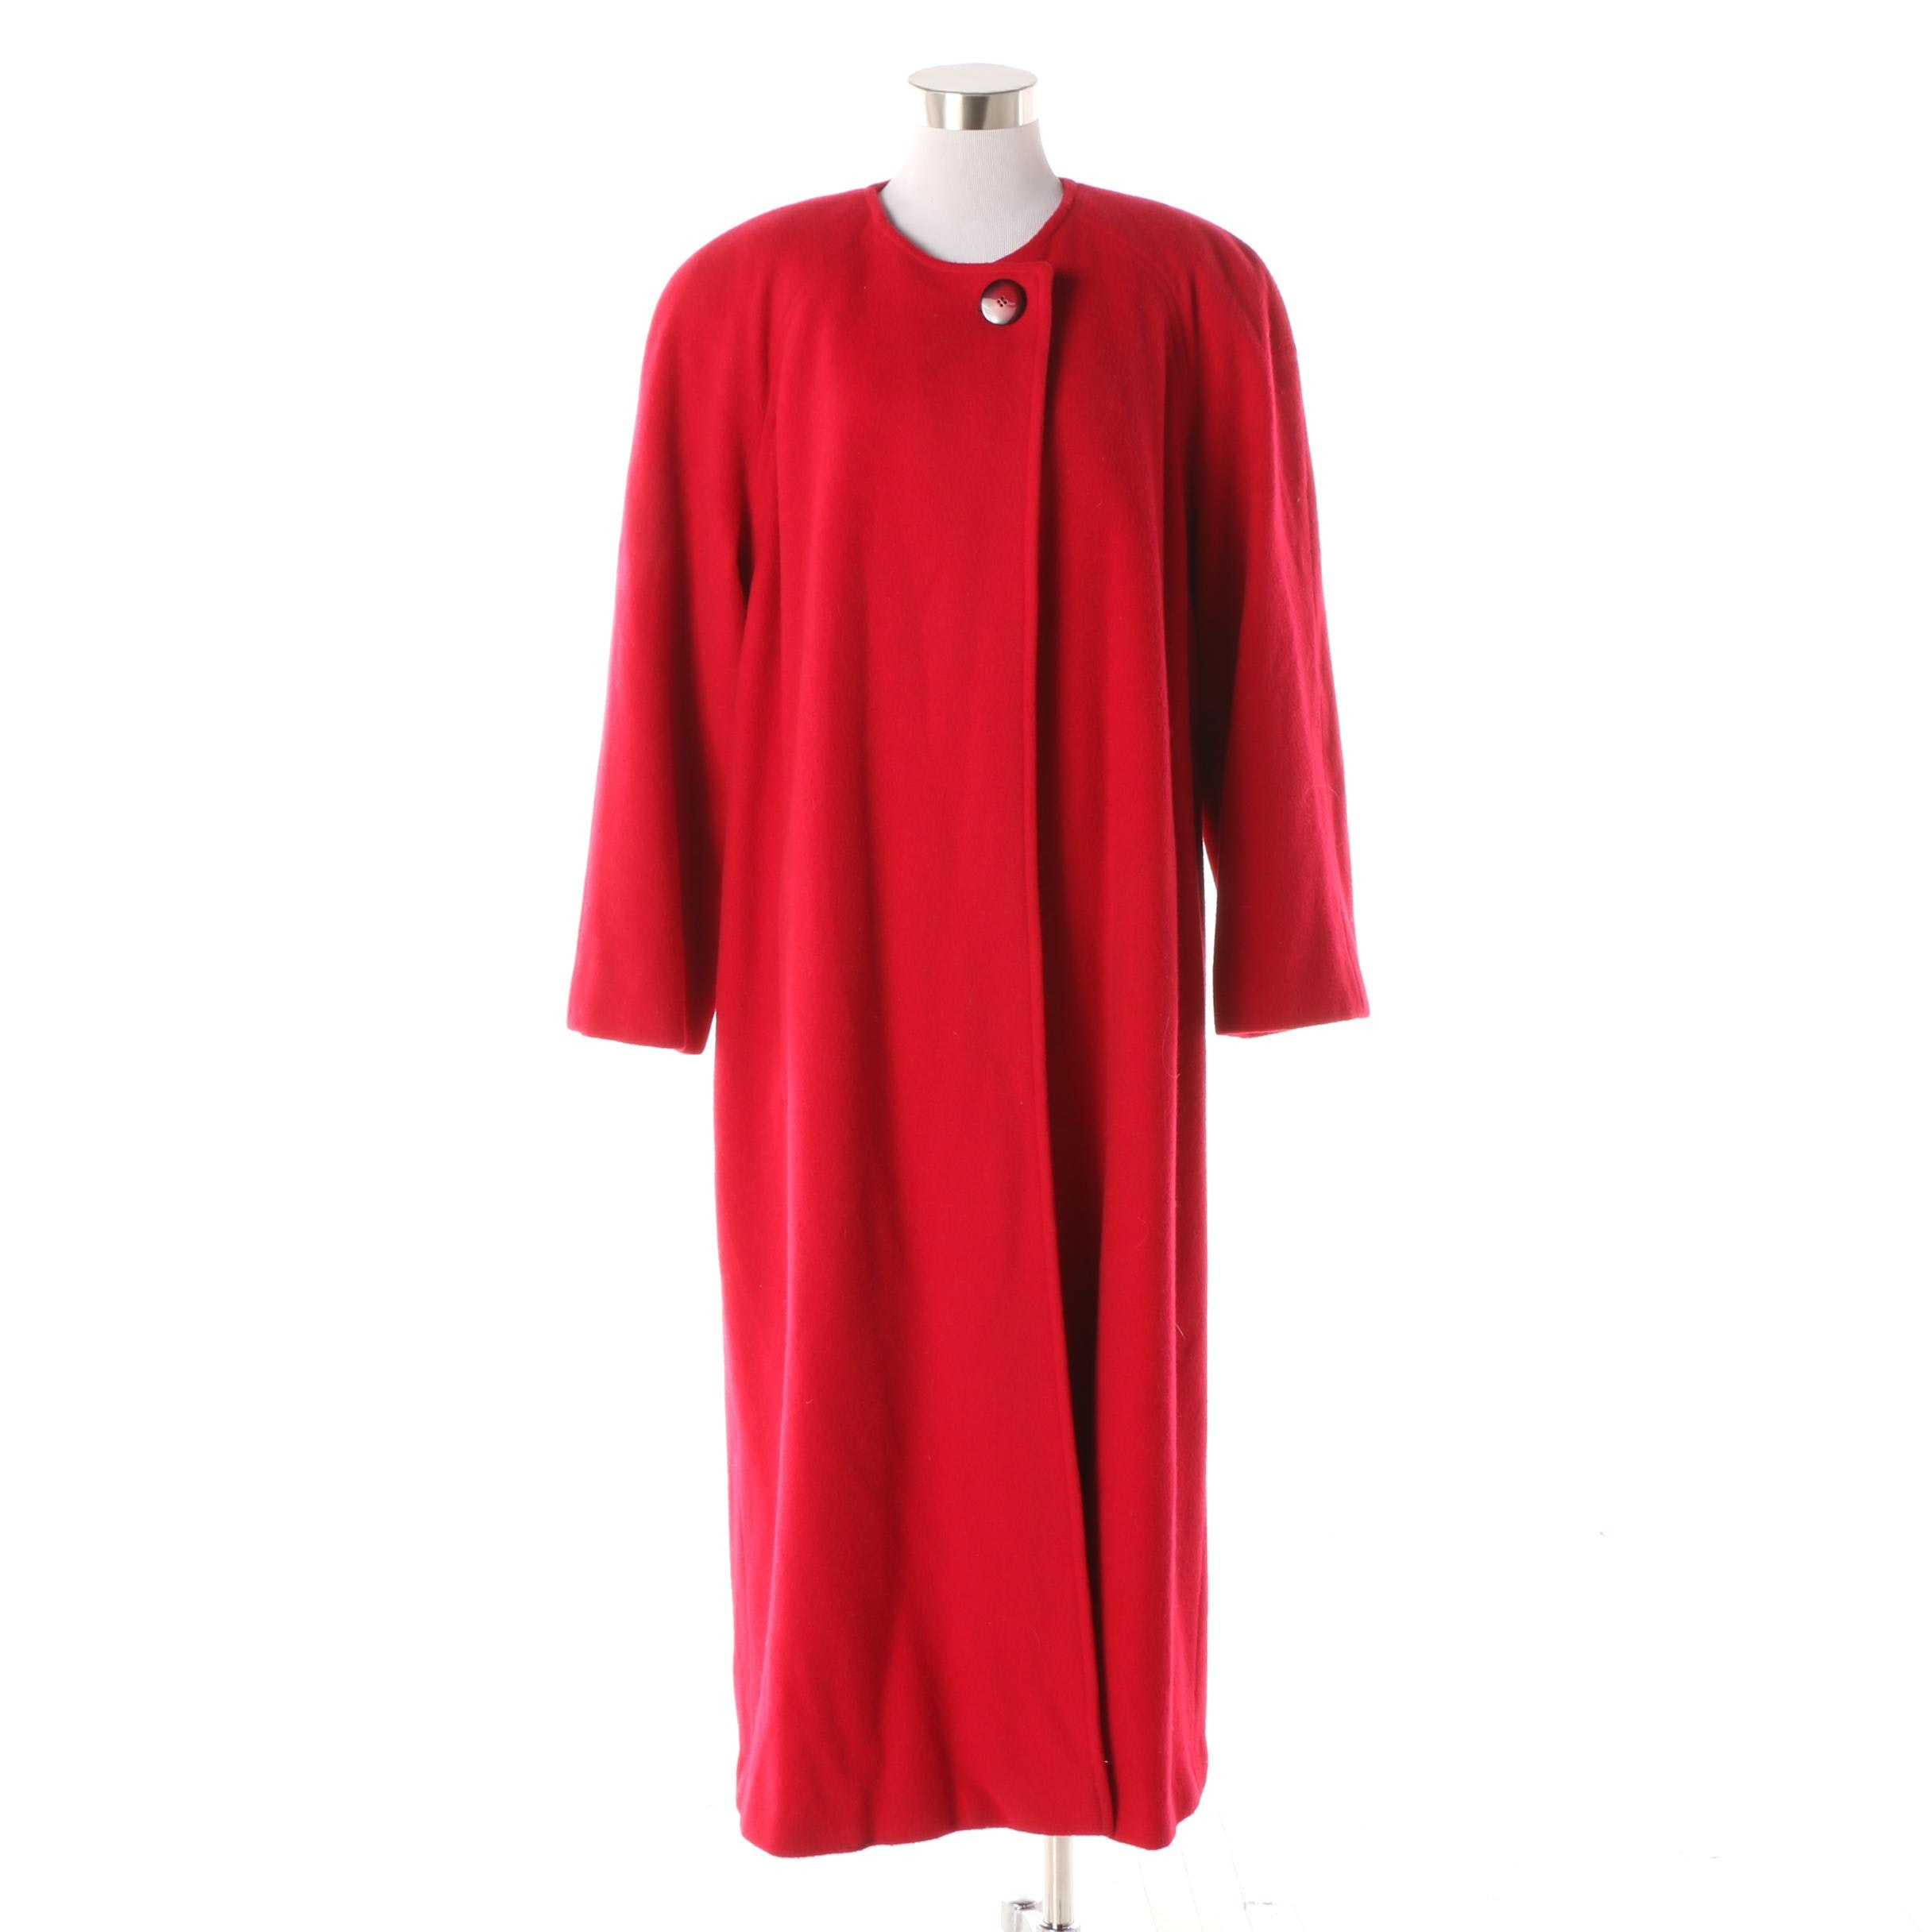 Women's 1980s Vintage Regency Cashmere for Neiman Marcus Red Collarless Coat